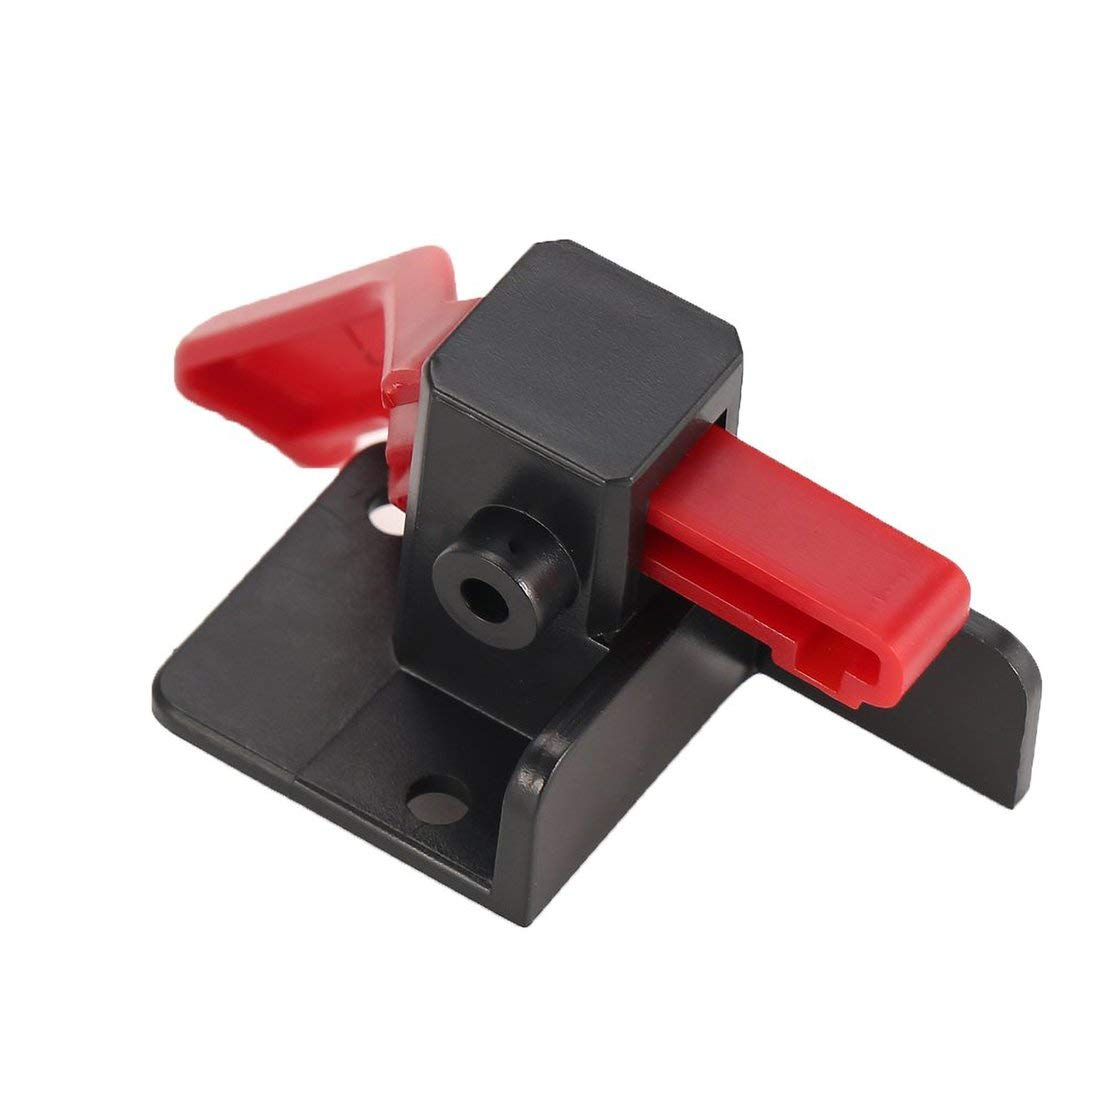 LouiseEvel215 Traxxas TRX4 ESC Easy Start Trigger Power Switch for RC Crawler Traxxas TRX-4 Crawler Car Spare Parts Accessories Component